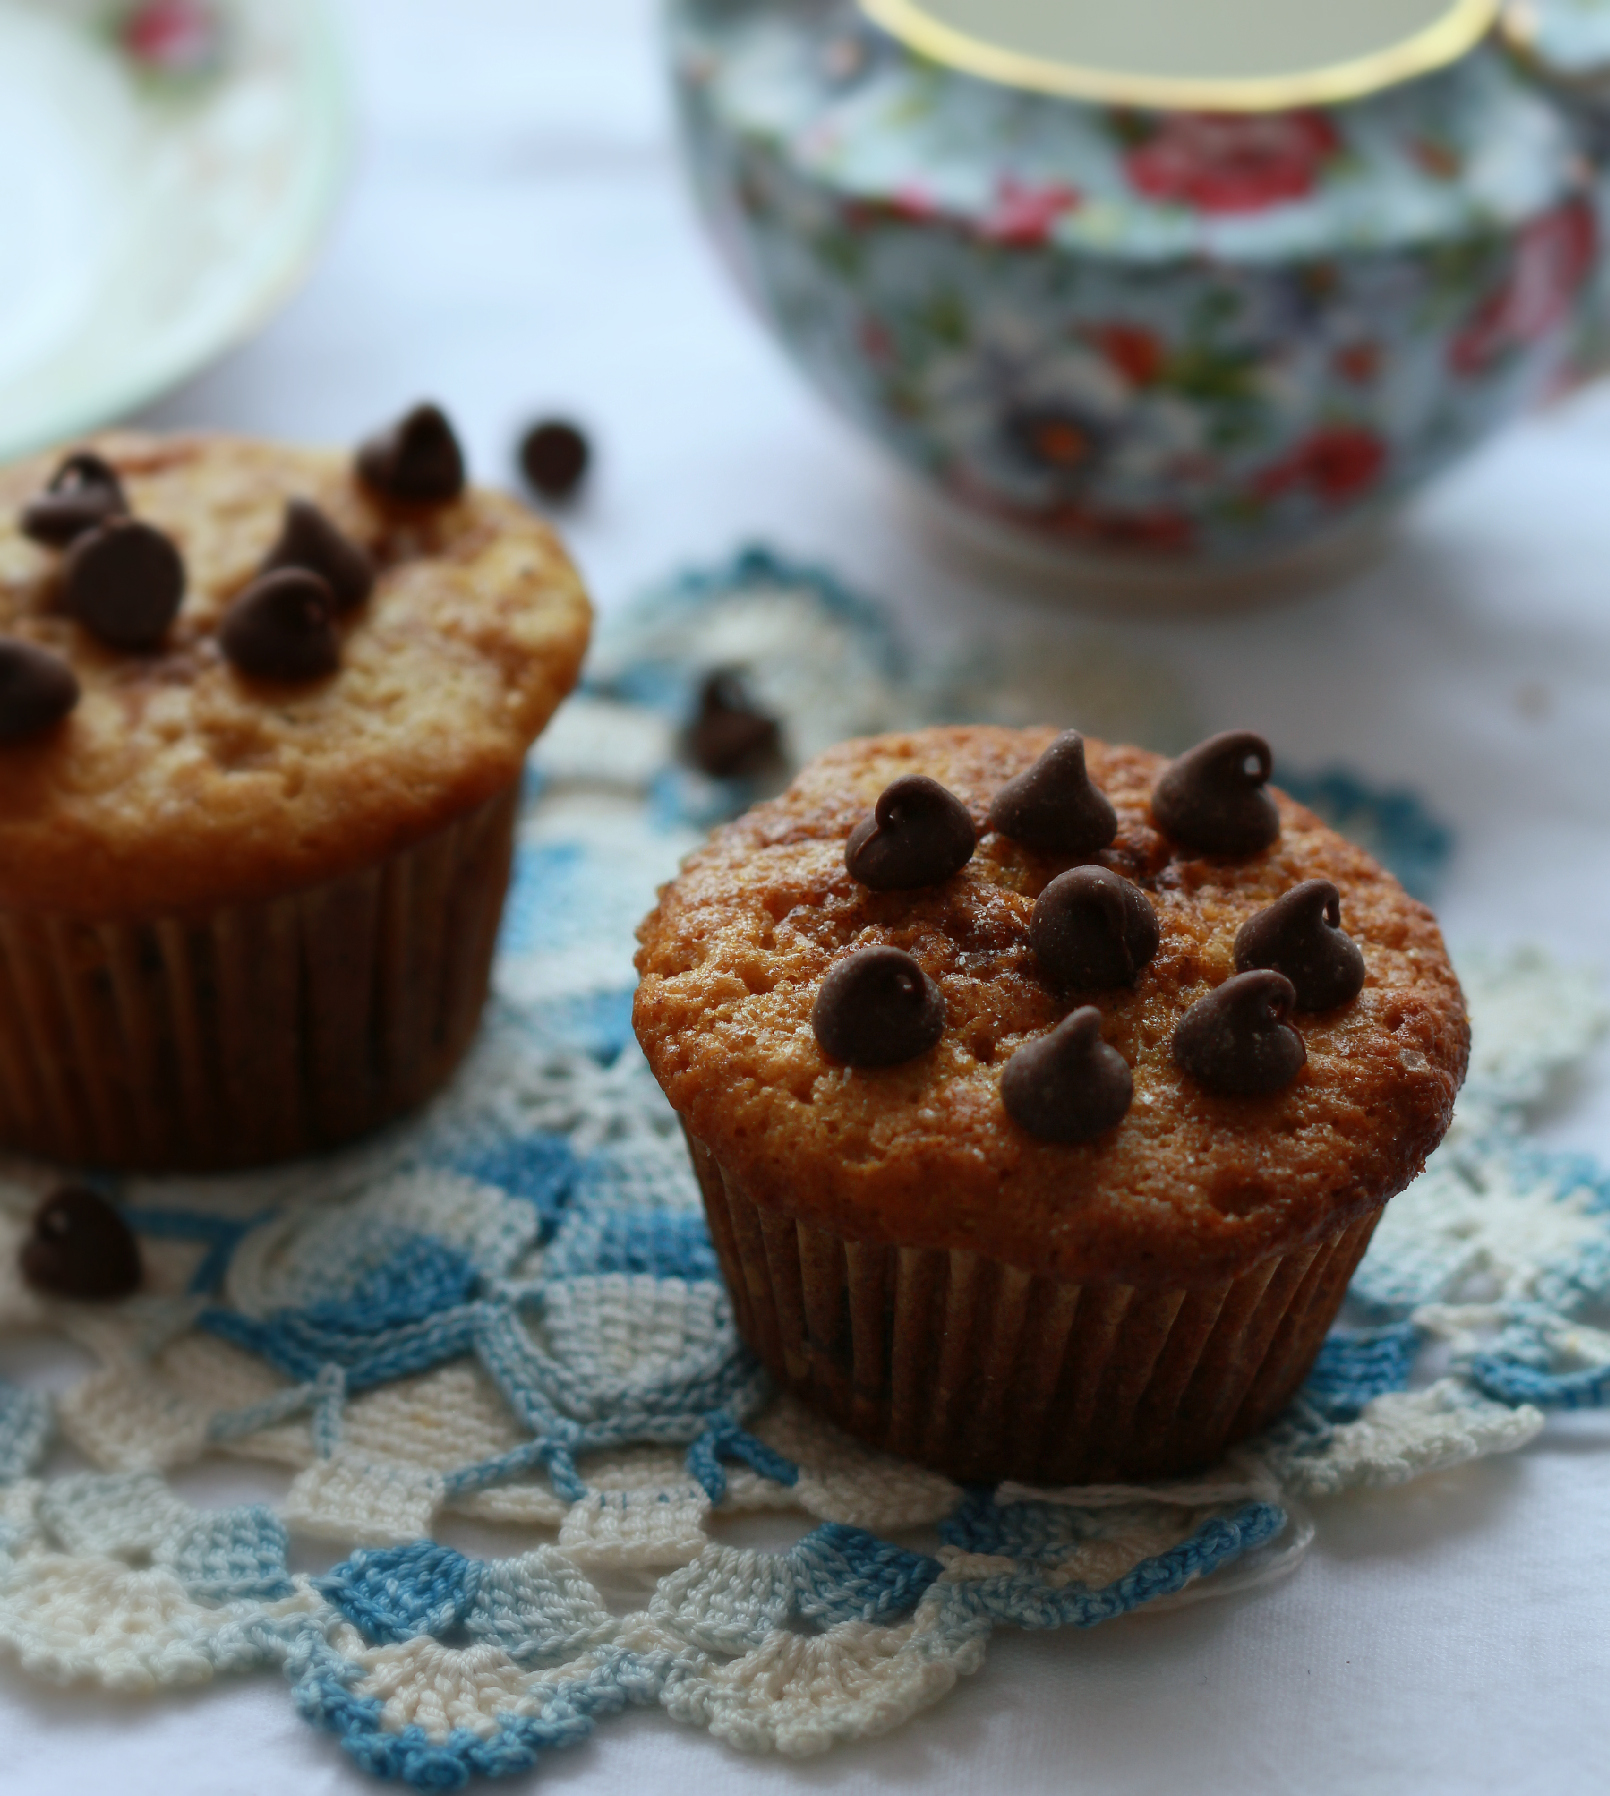 ©Dark Chocolate Chip Muffins on Lace with Teapot by Dena T Bray